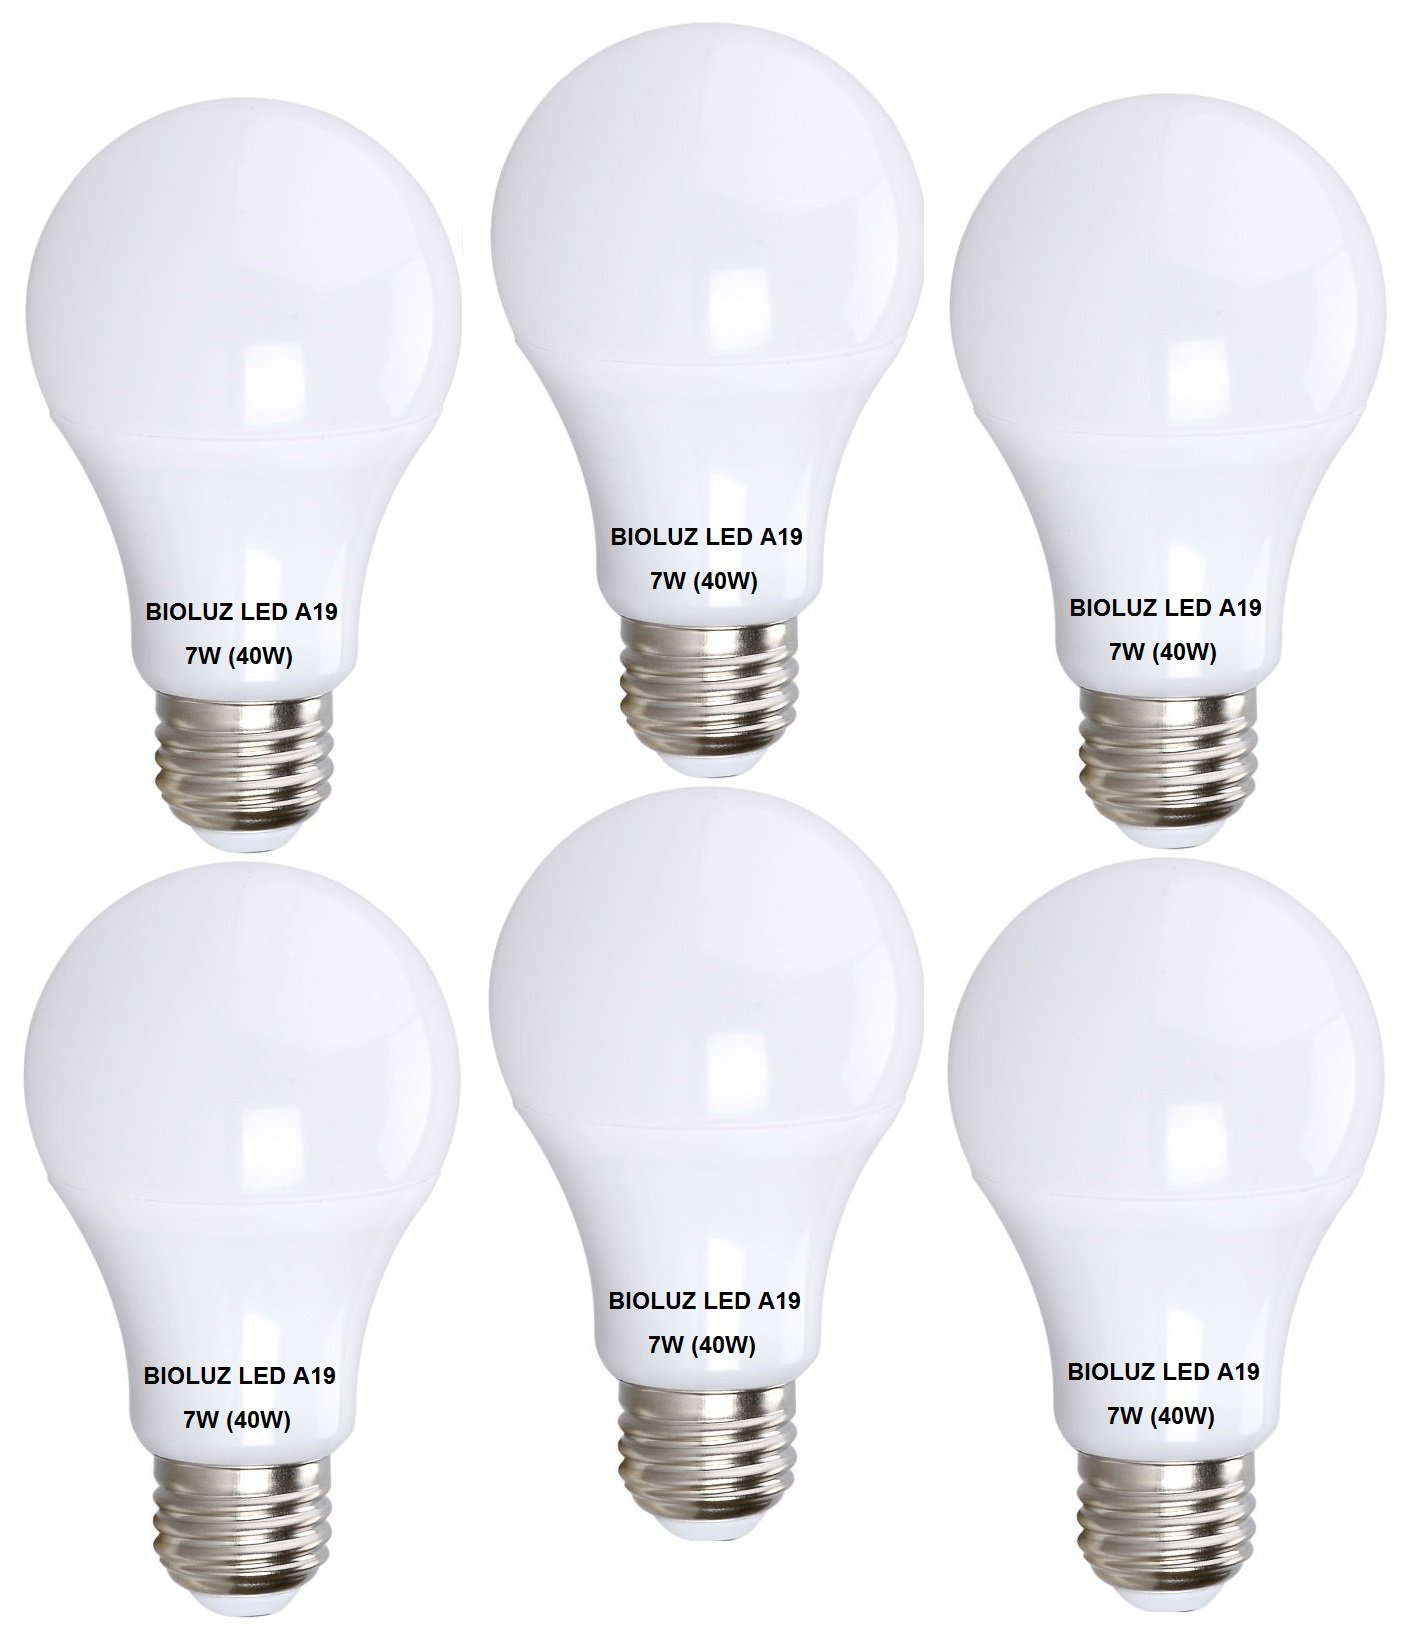 Bioluz LED 40 Watt LED Light Bulb (uses 6 watts) A19 LED Light Bulbs SEE Series Non Dimmable Warm White (2700K) Light Bulb 6-Pack